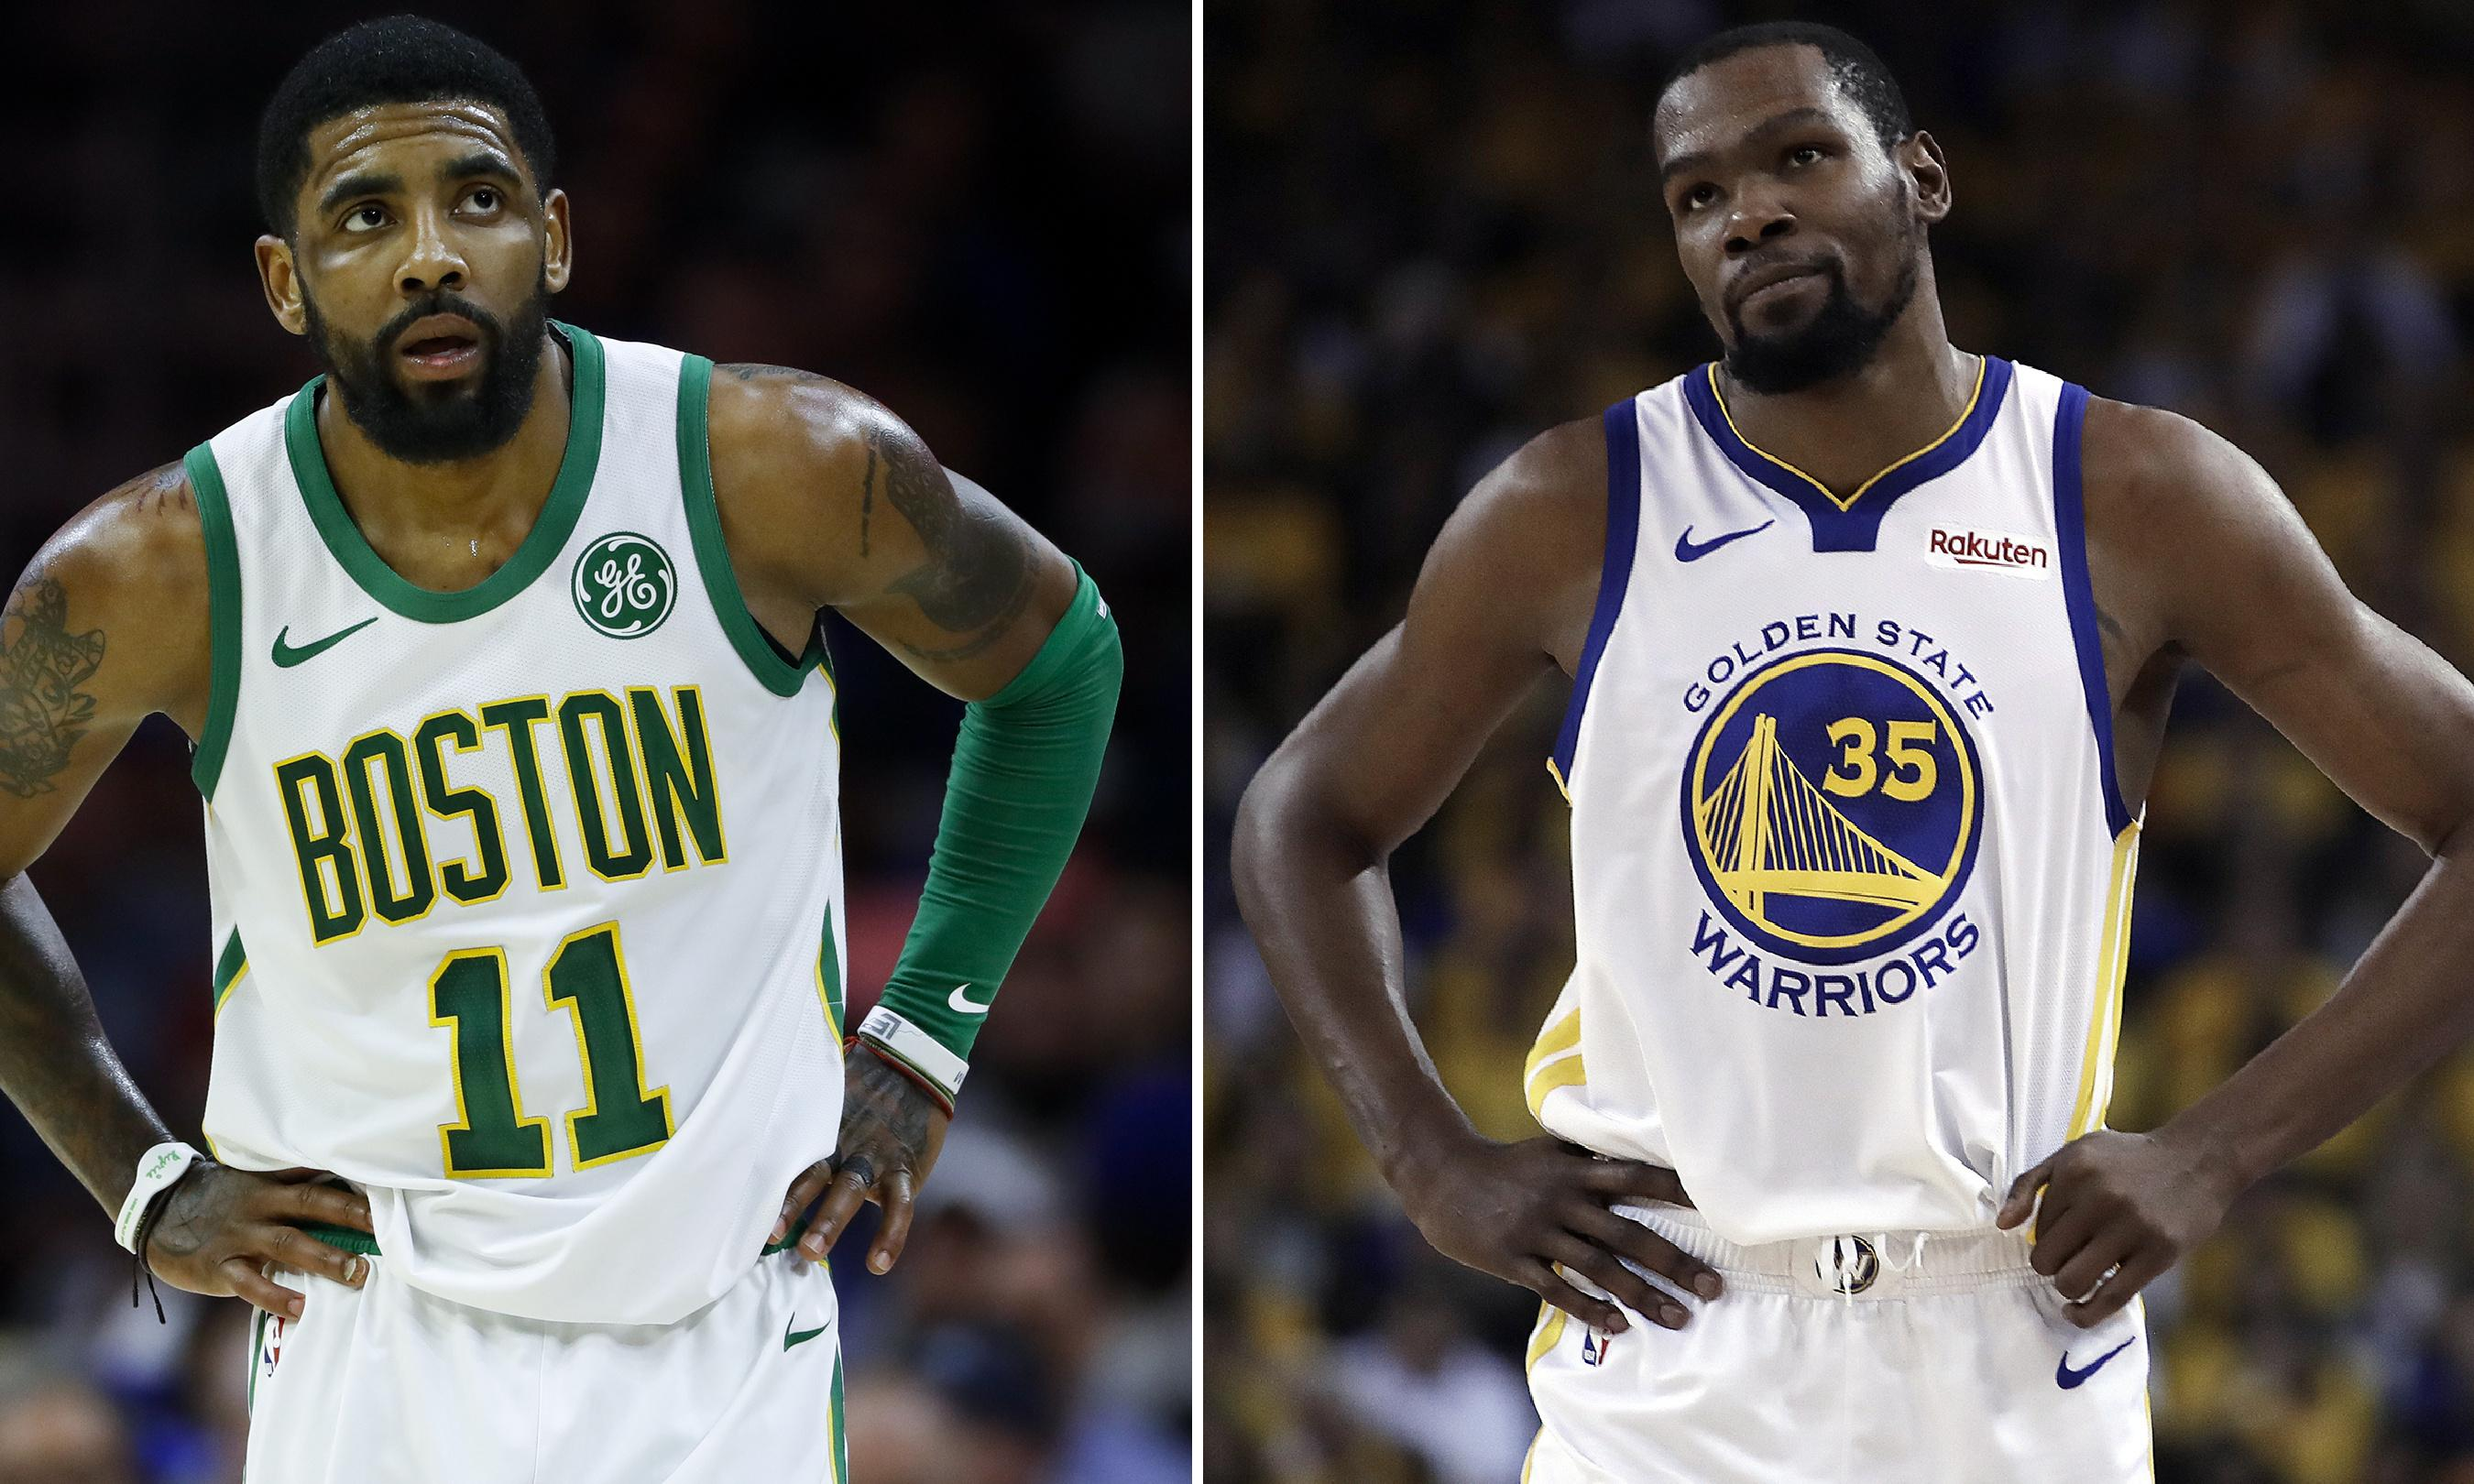 Kevin Durant's Nets move changes everything except the Knicks' incompetence